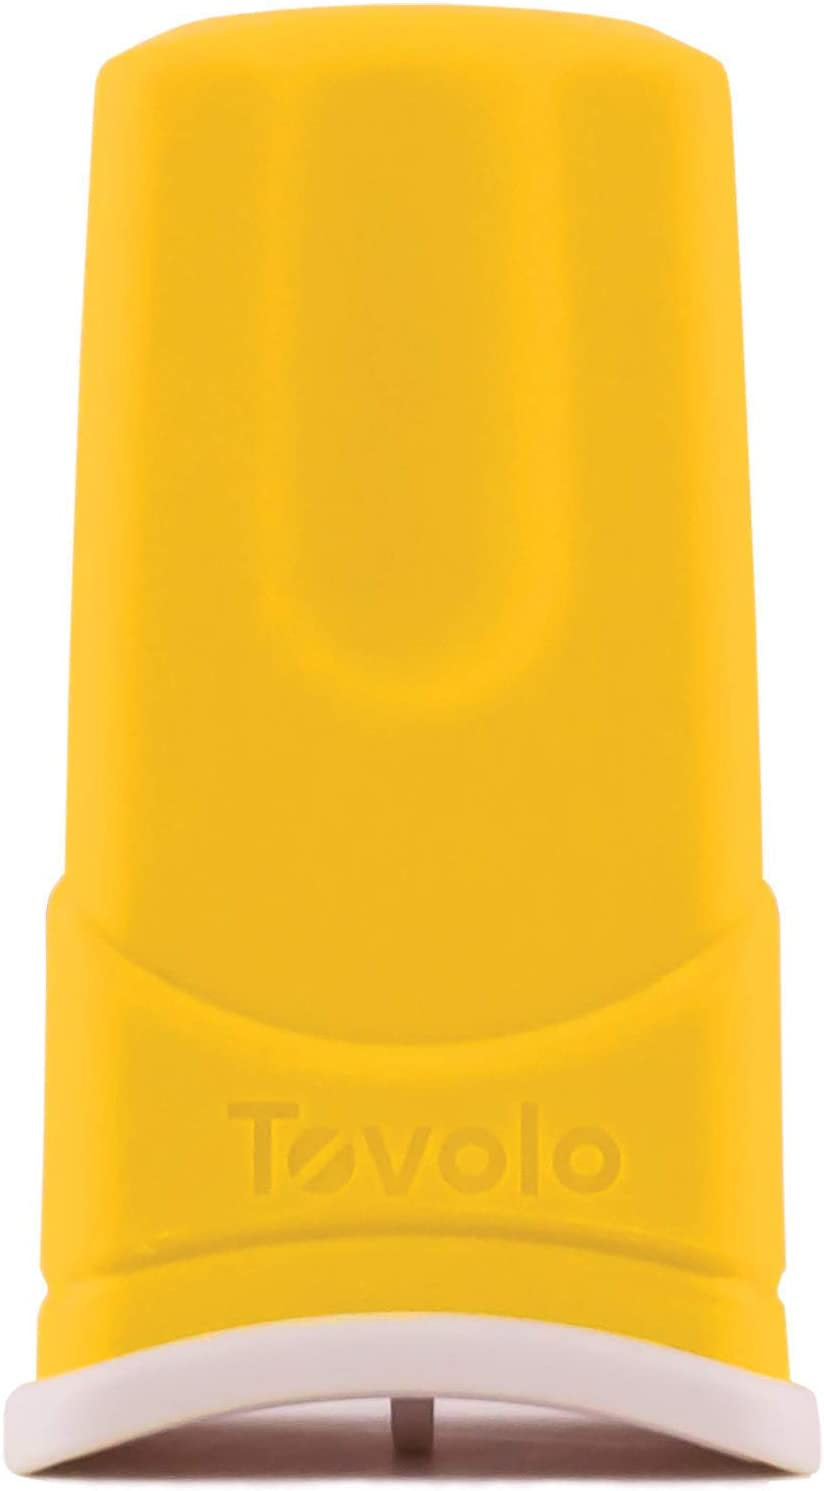 Tovolo Silicone Butter Sleeve, Mess-Free Butter Application, Dishwasher Safe, 1 Stick Capacity